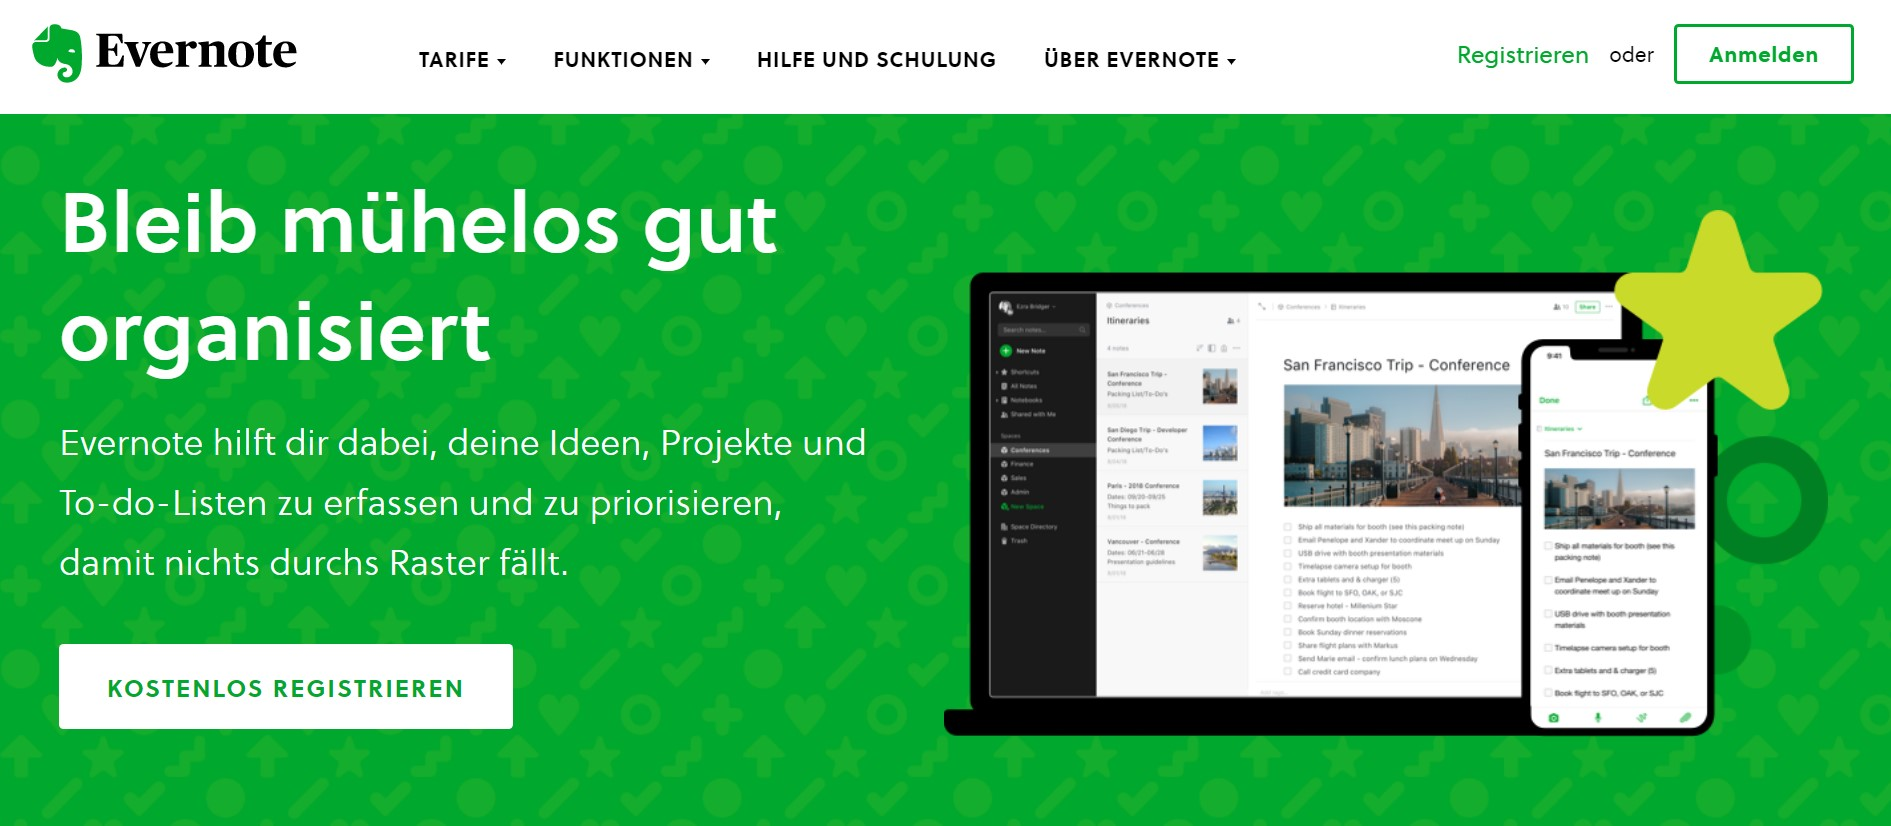 Evernote's Website Layout